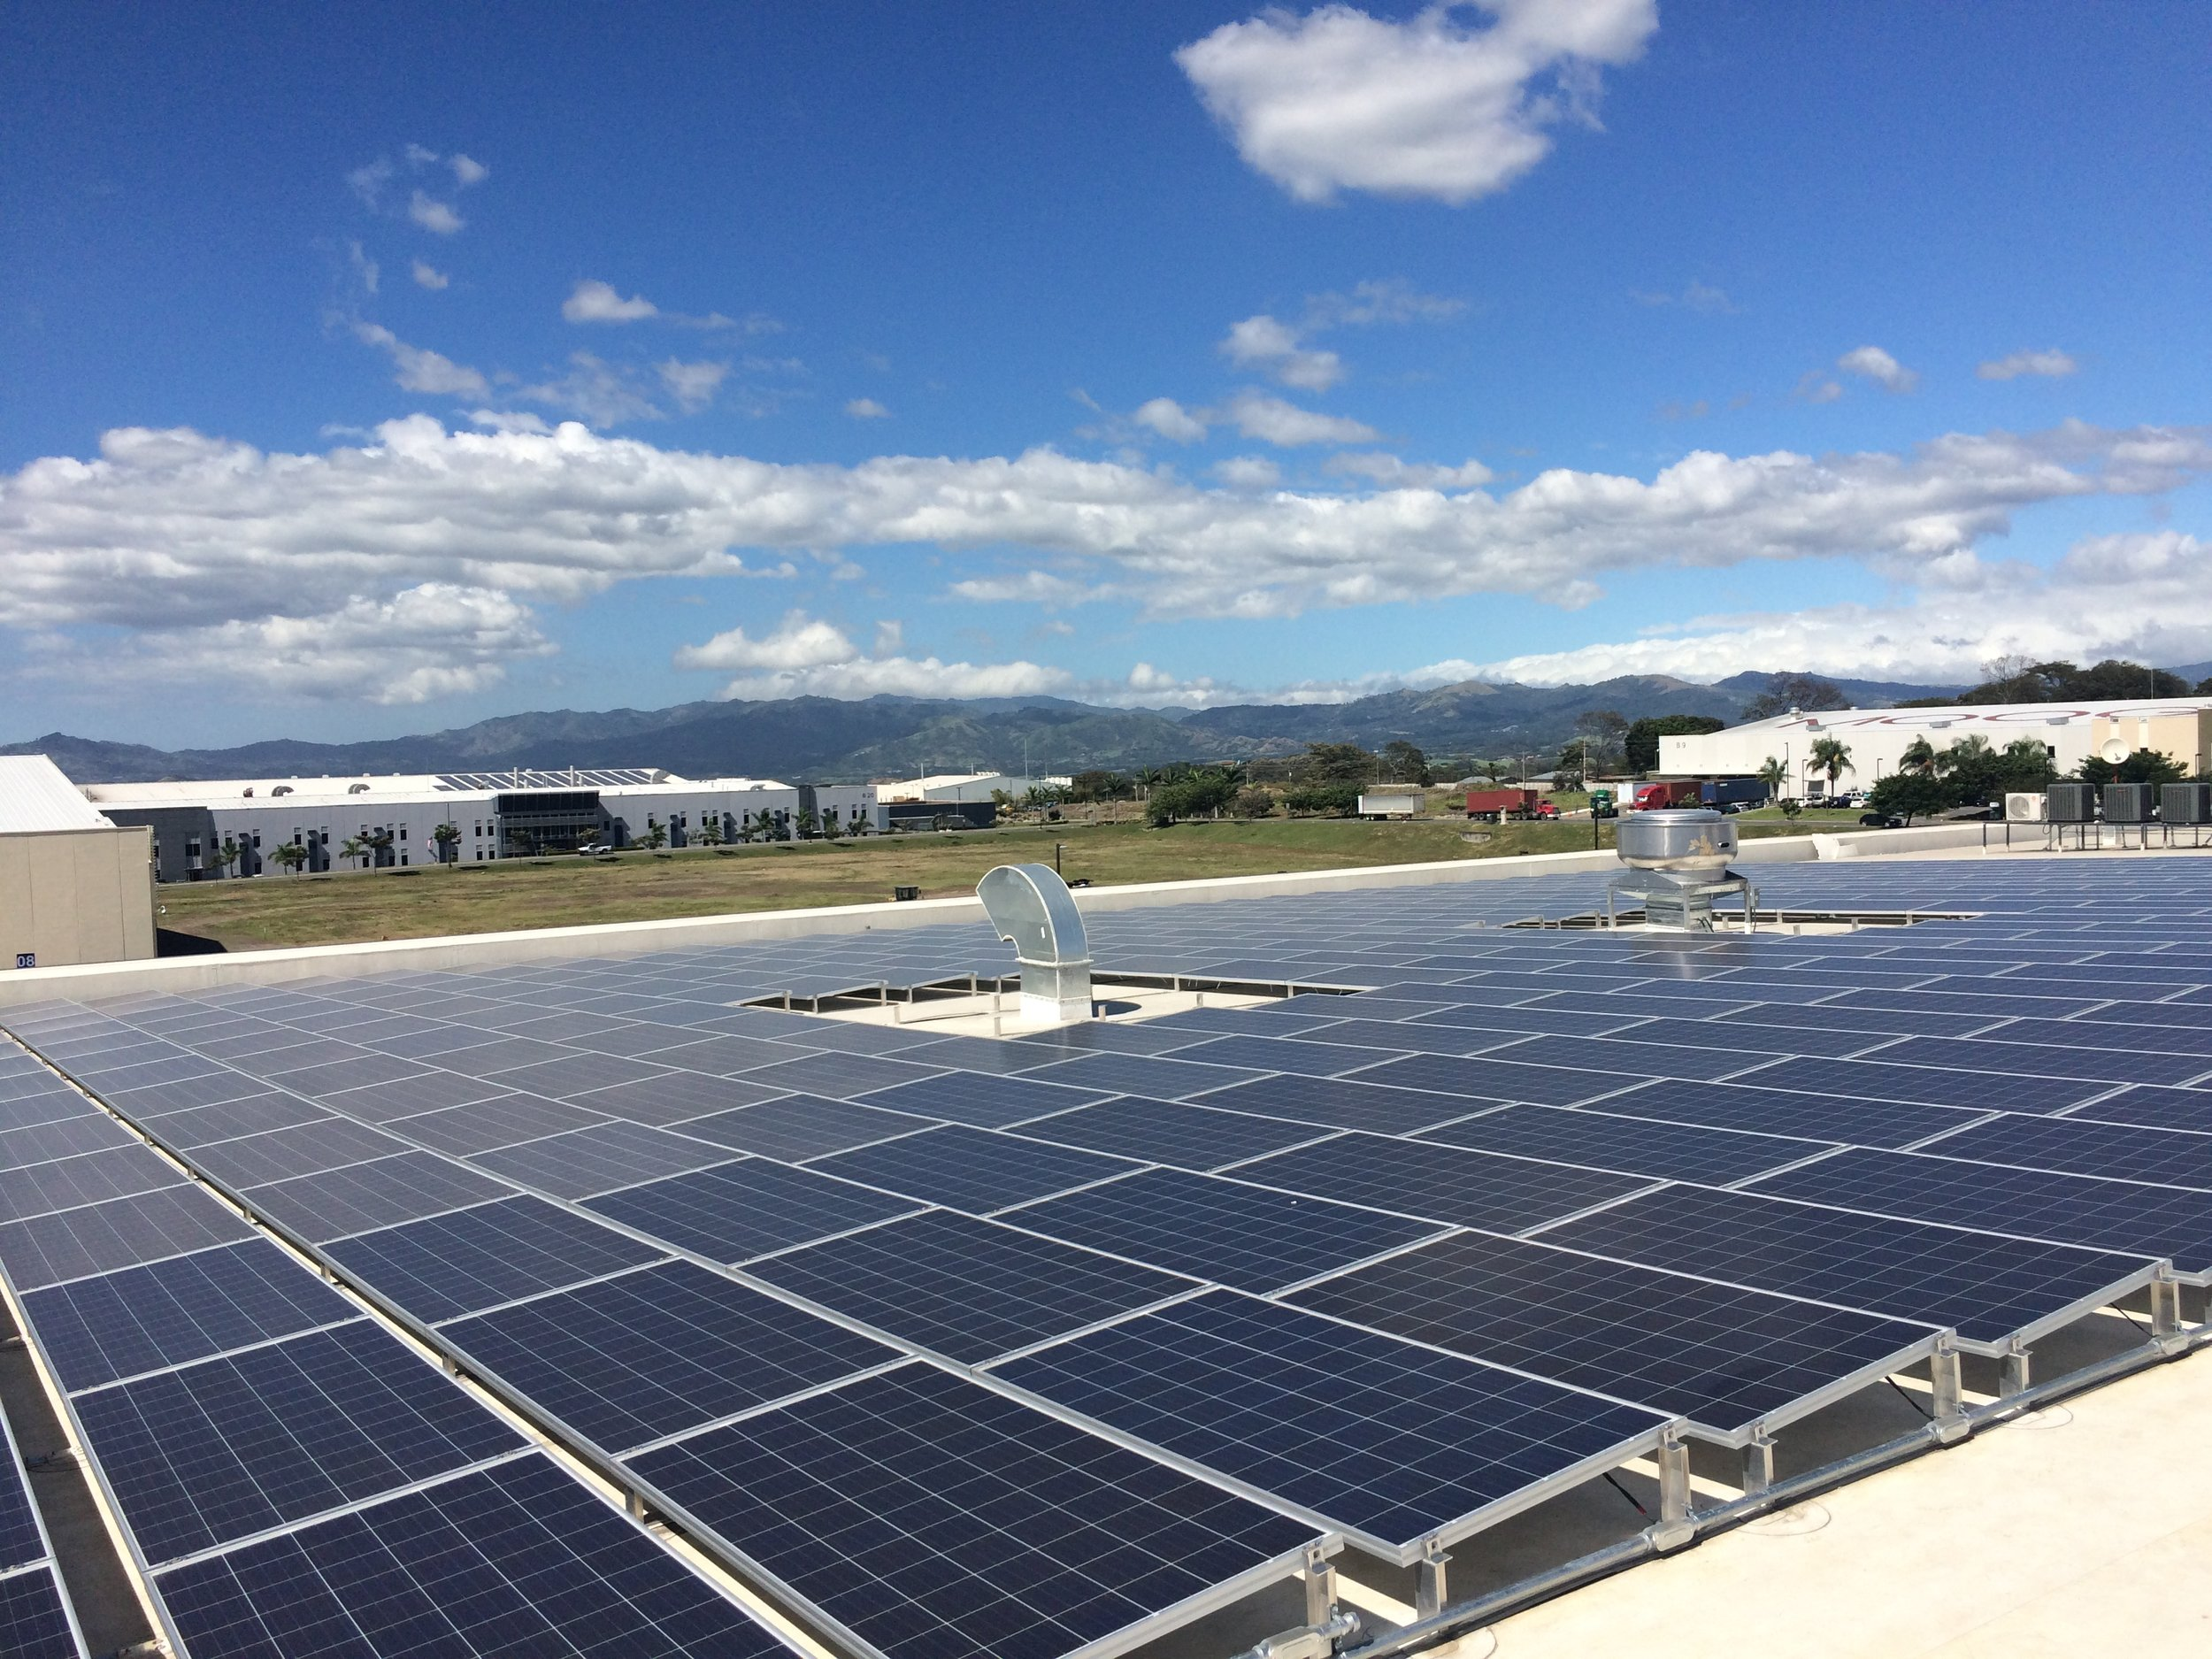 Rio Grande Renewables Completes Solar+Storage Microgrid in Costa Rica - December 6, 2016 - Albuquerque-based Rio Grande Renewables has completed what is being called the largest micro-grid in Central America, a 276kW solar plus 500kW/1MWh energy storage system.